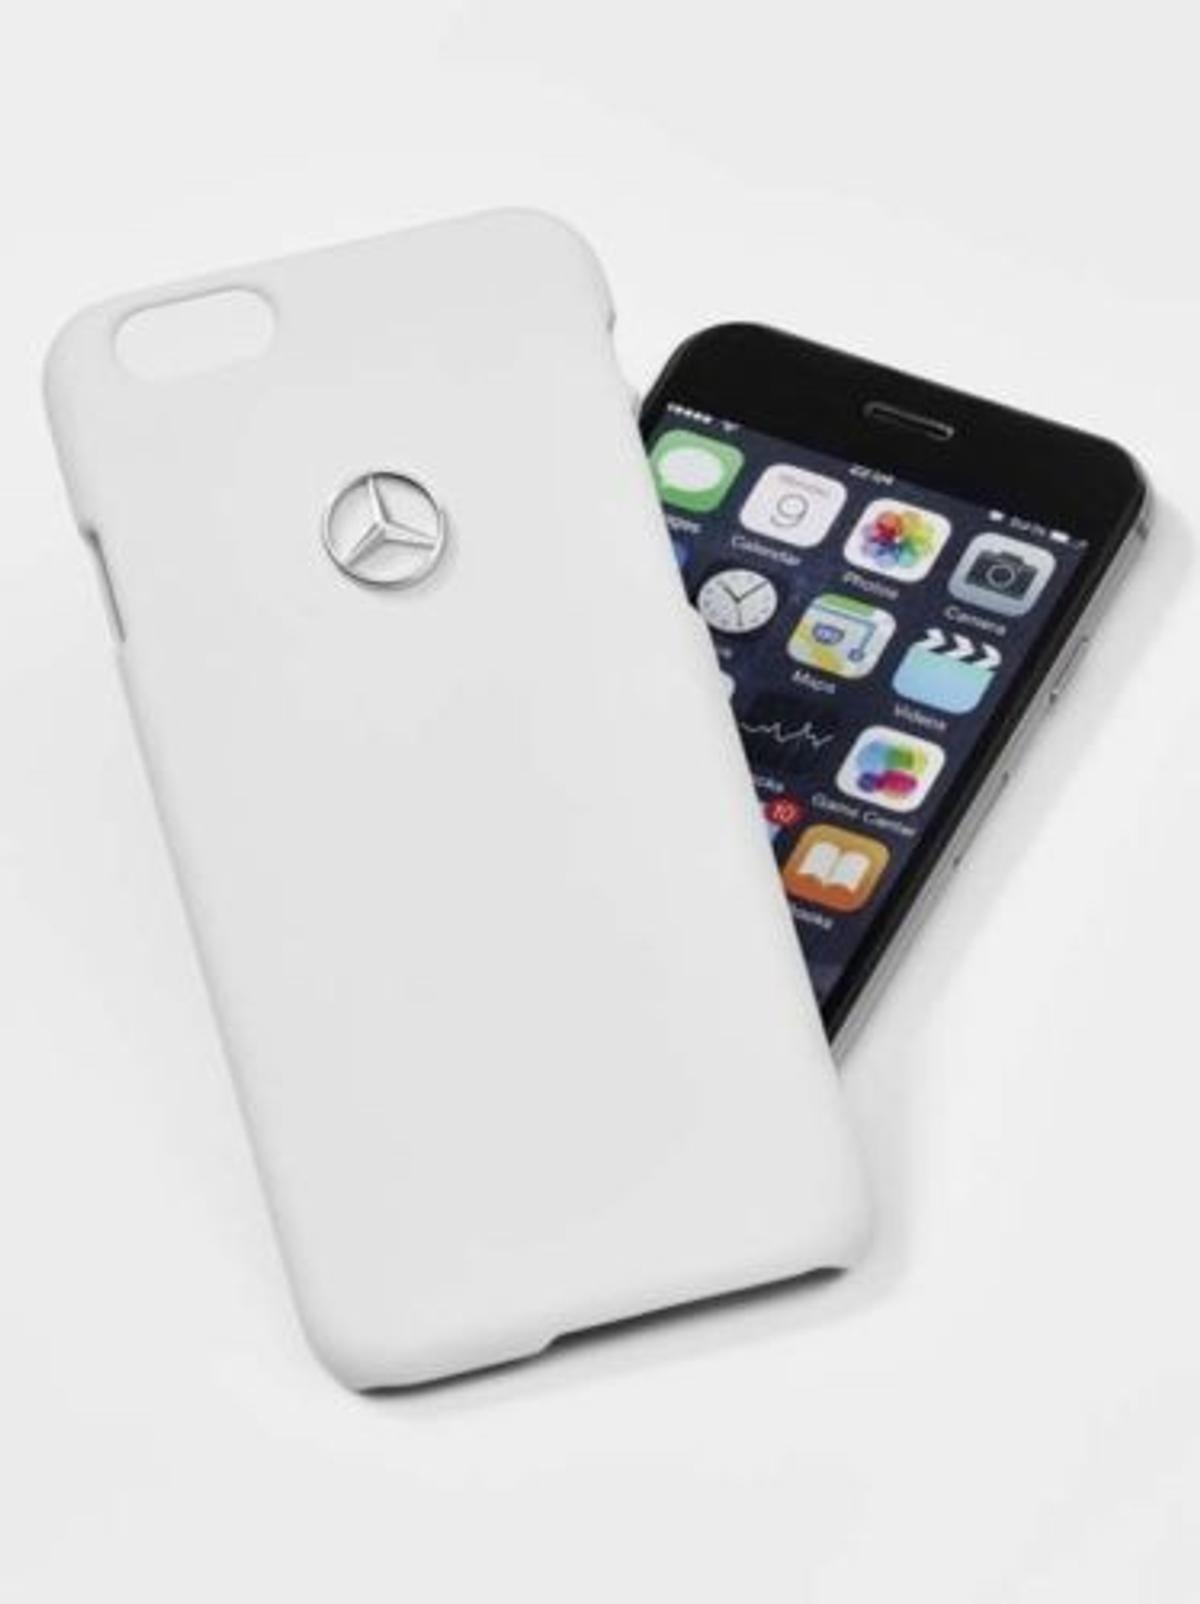 Mercedes Handy Schutz Cover Hülle Iphone 6 In 21035 Neuallermöhe For 10 00 For Sale Shpock